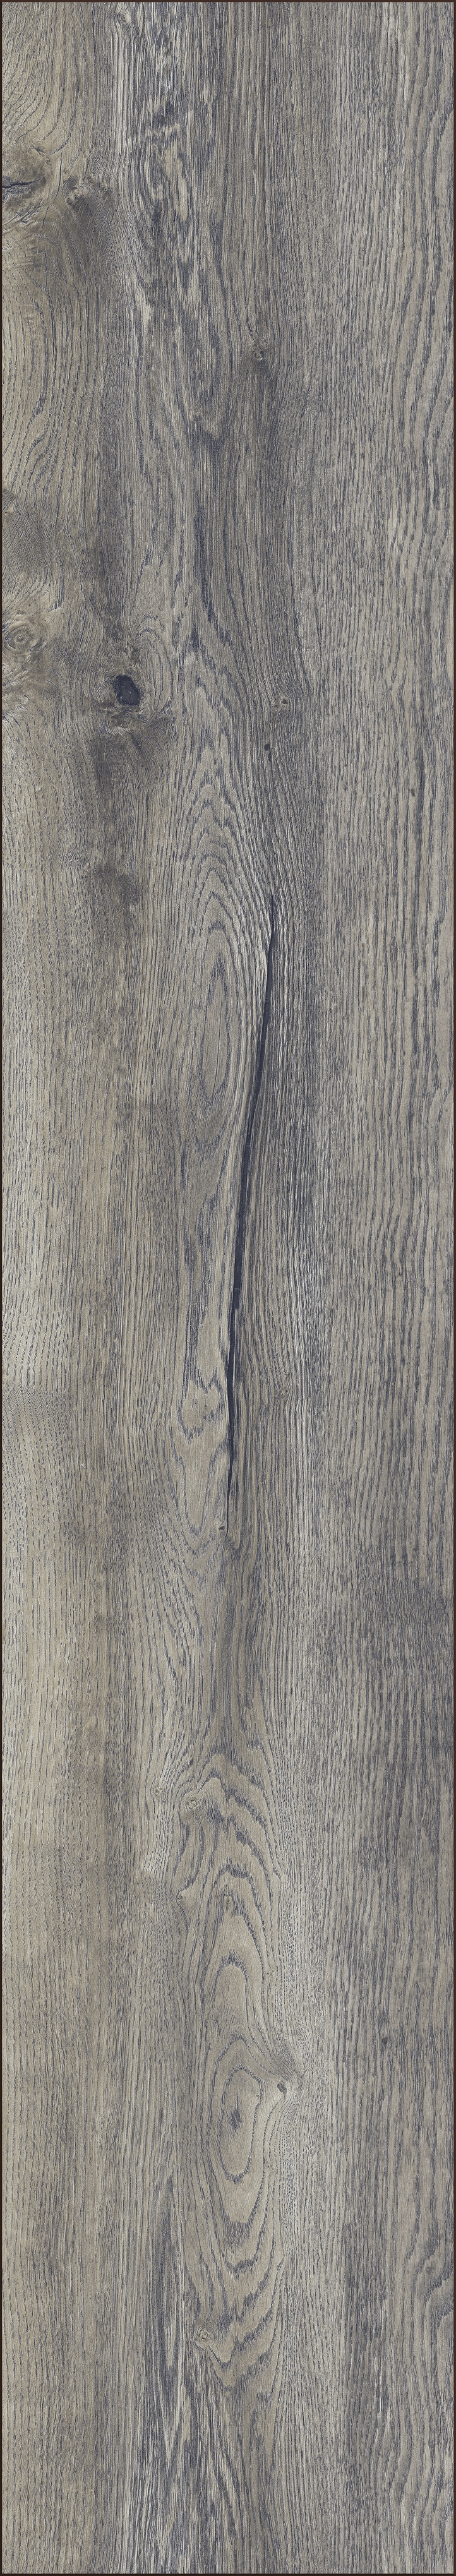 Kronotex exquisit plus harbour oak grey d 3572 from kronotex for Kronotex laminate